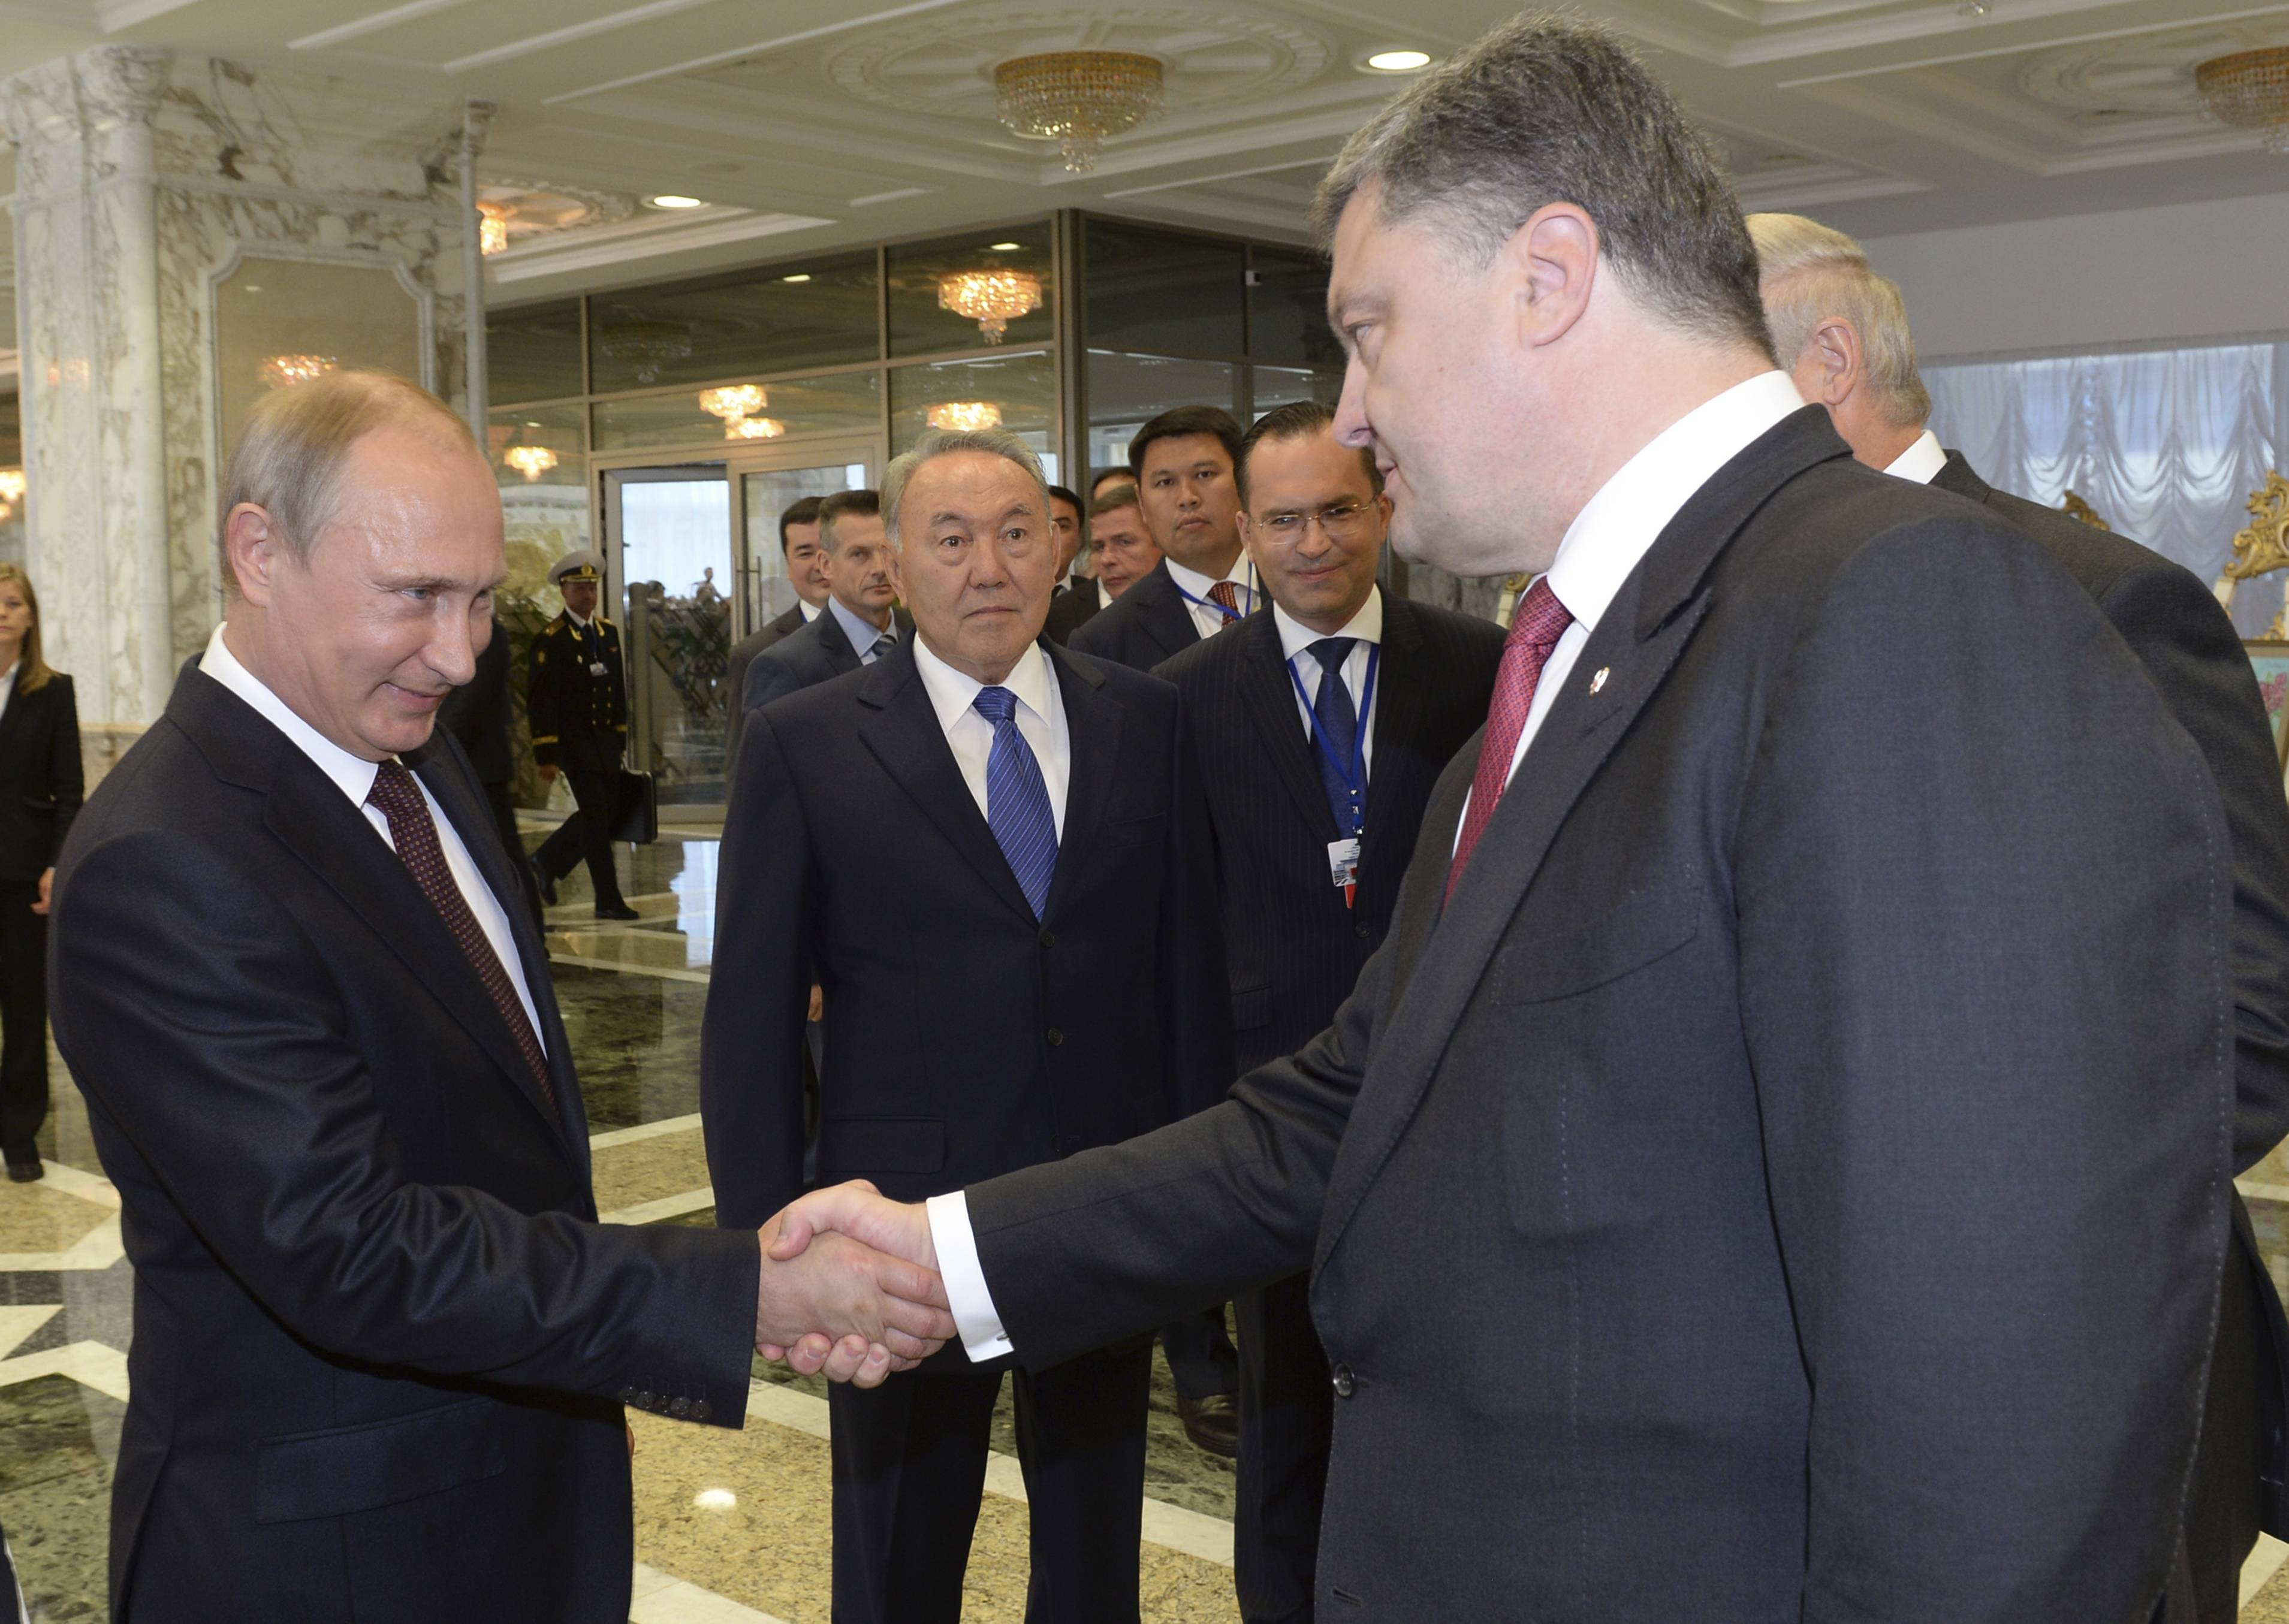 Russian President Vladimir Putin, left, shakes hands with Ukrainian President Petro Poroshenko, right, as Kazakh President Nursultan Nazarbayev, center, looks on. Leaders of Russia, Belarus, two other former Soviet republics as well as top EU officials are meeting in Minsk, Belarus, for a highly anticipated summit to discuss the crisis in Ukraine which has left more than 2,000 dead and displaced over 300,000 people.